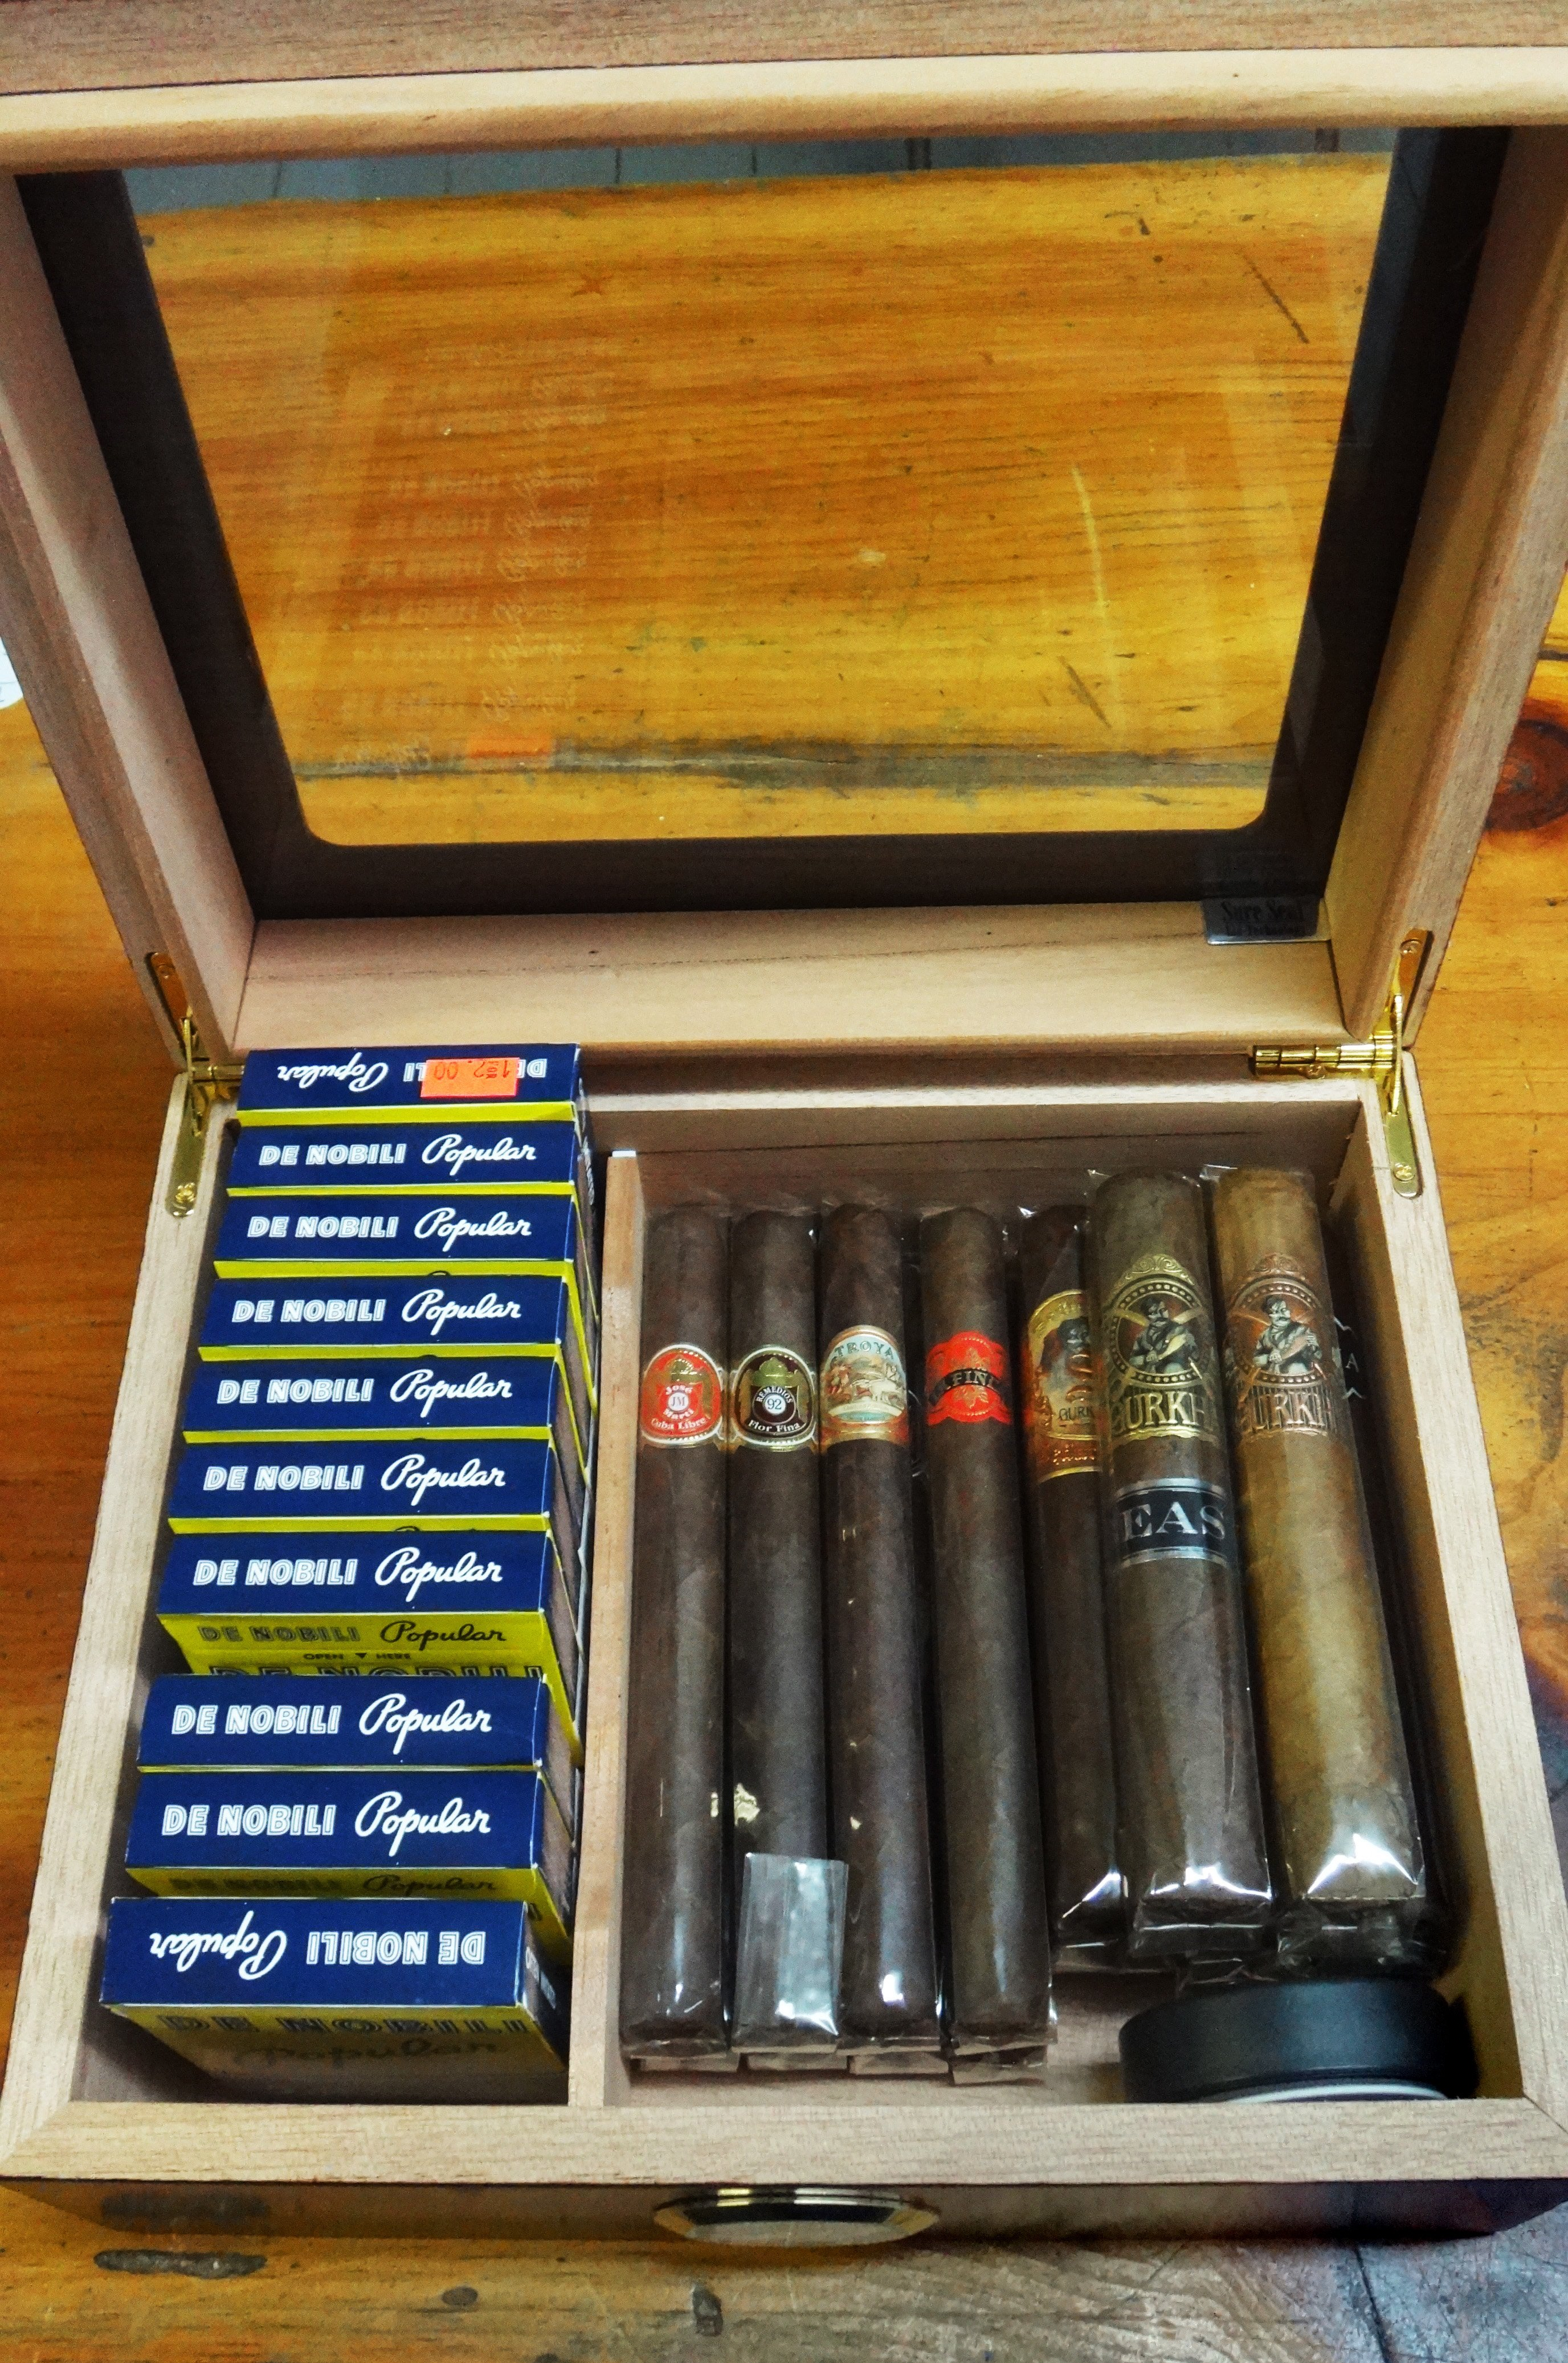 selection of fine cigars